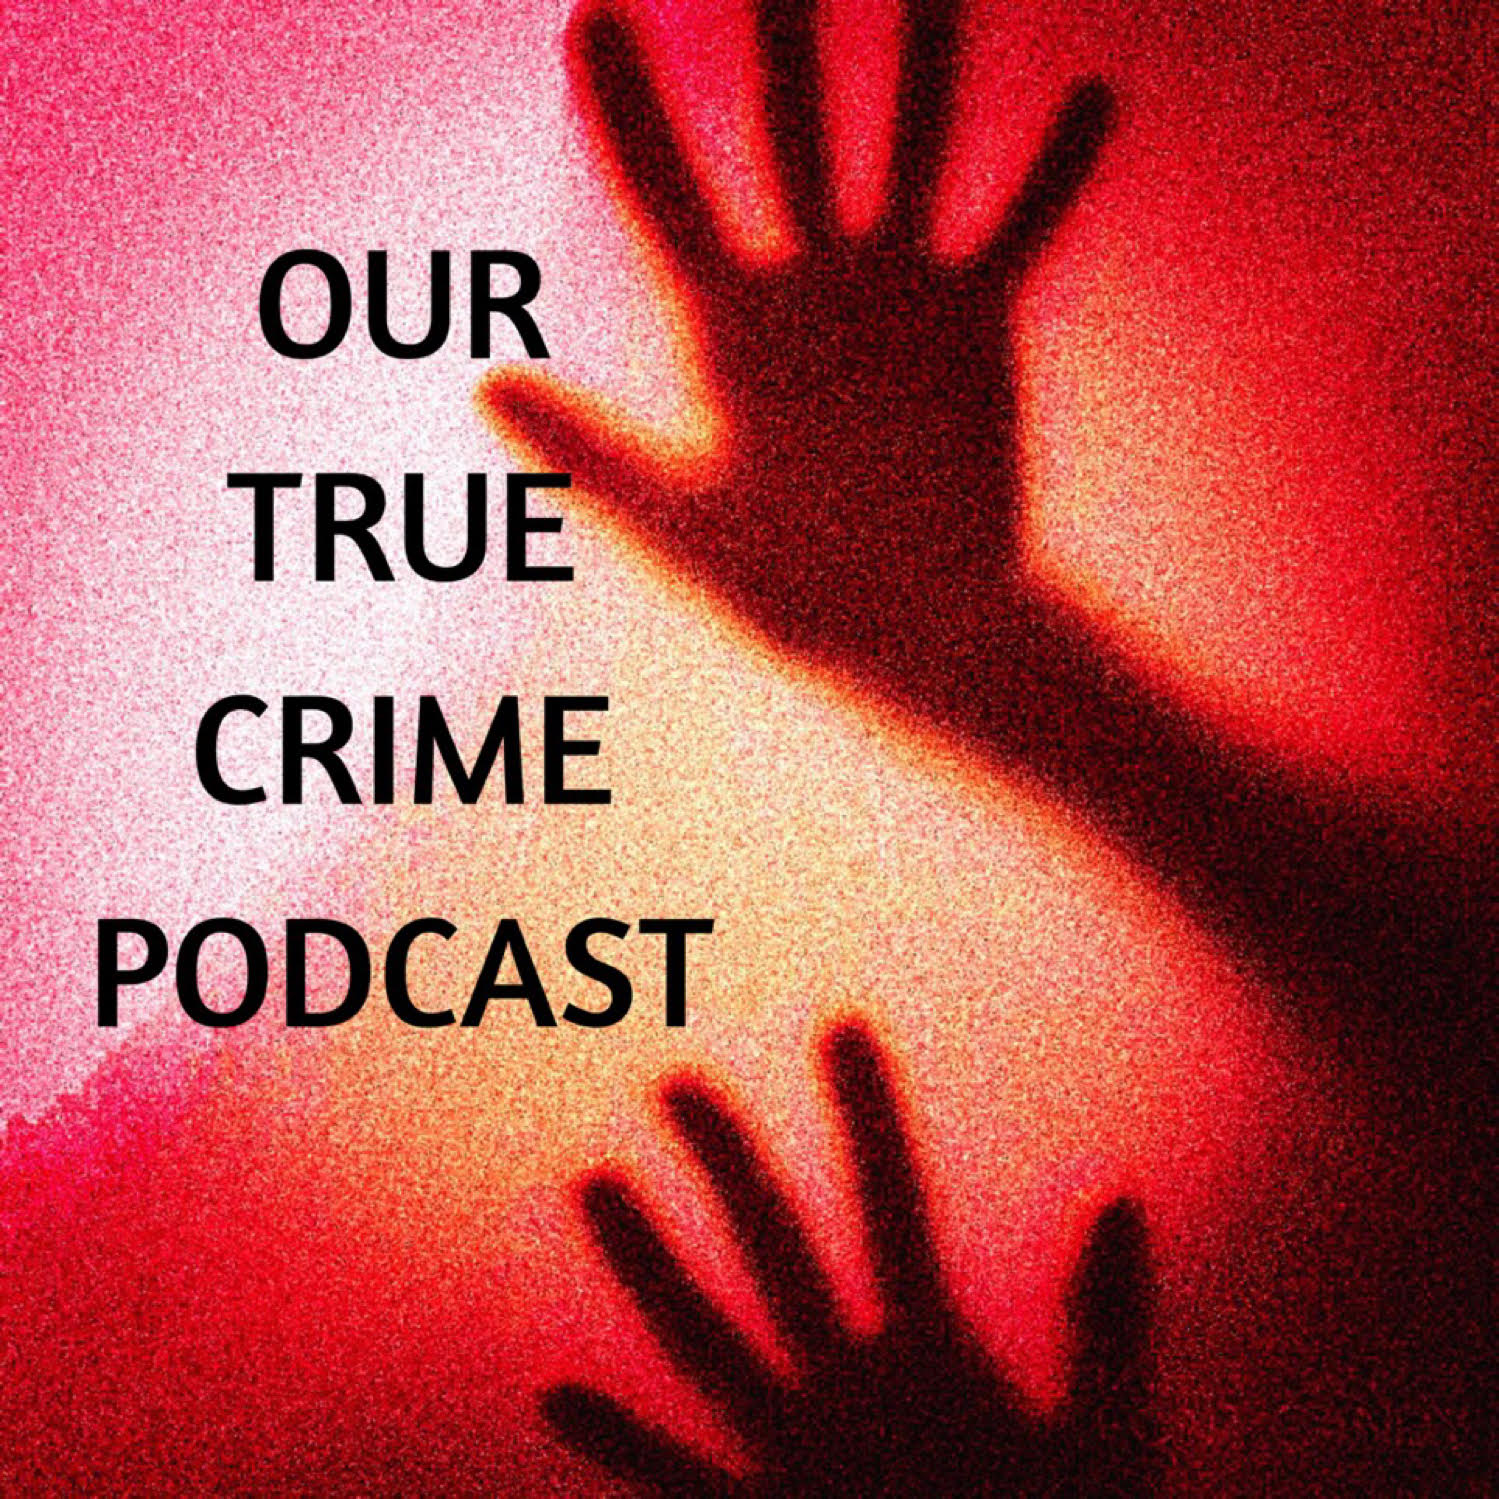 Introducing Our True Crime Podcast Coming July 11th